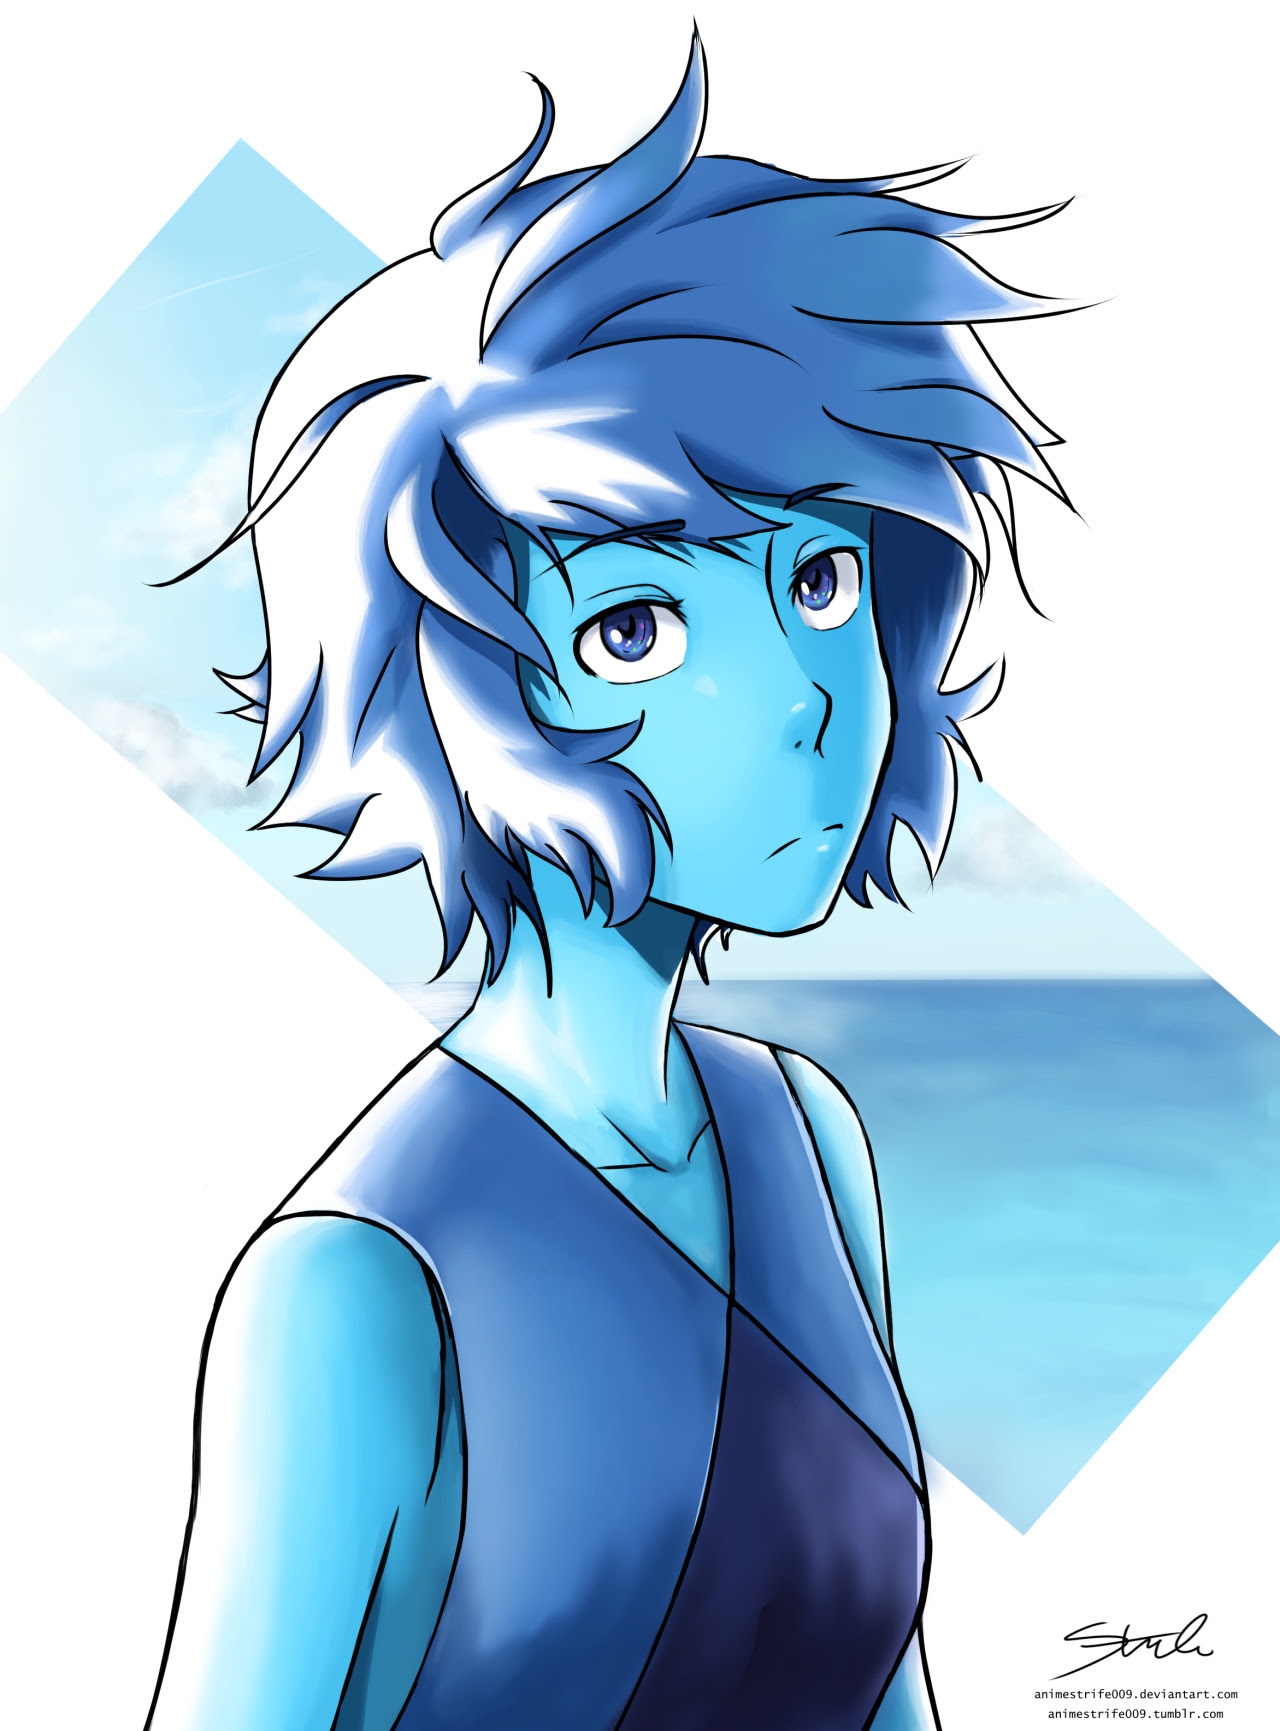 Had no ideas, so dug out this older sketch. Quickly painted it and fixed the lineart a little. Wanted to draw Lapis in my manga style. :)